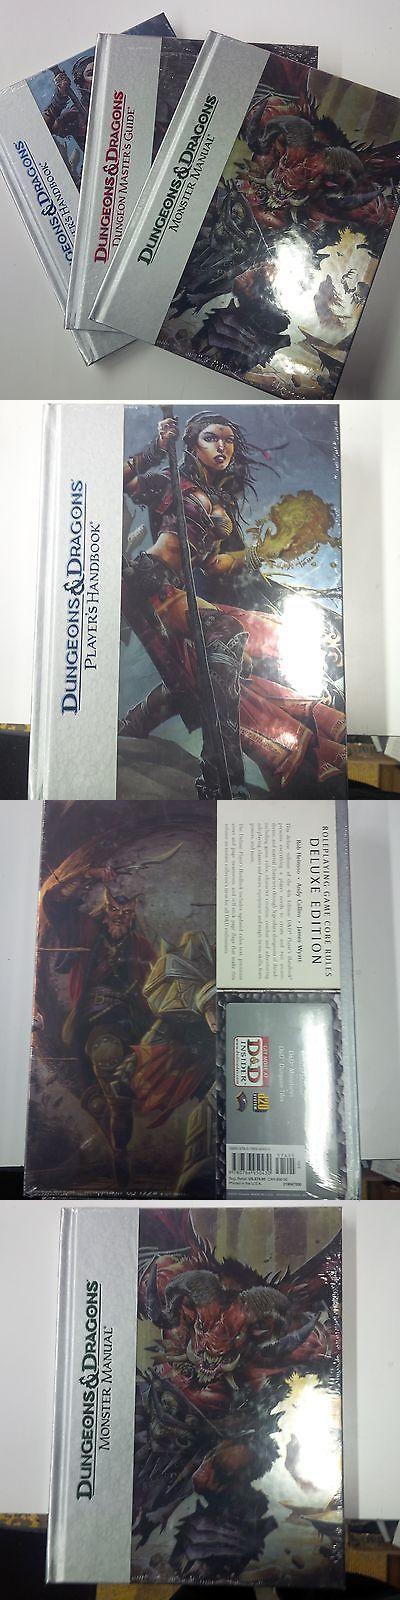 Other Dungeons and Dragons 2545: Dandd 4.0 4Th Edition Dlx Players Handbook, Monster Manual, Dmg All New In Shrink -> BUY IT NOW ONLY: $129.99 on eBay!